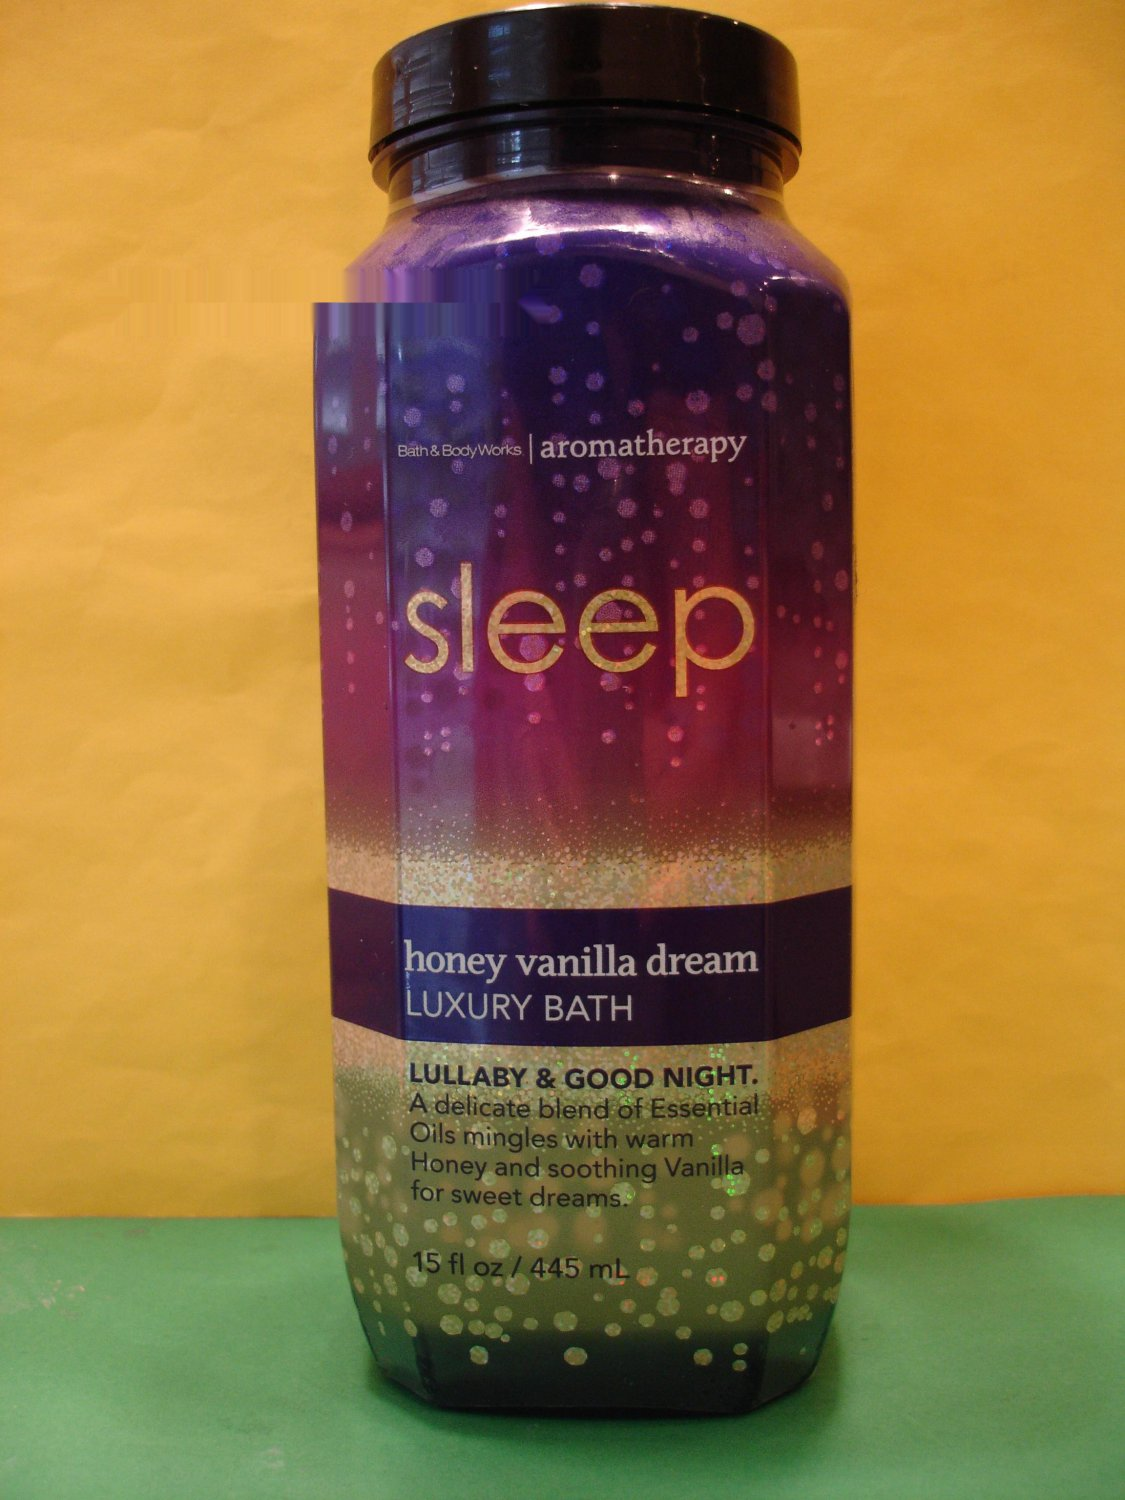 Bath Amp Body Works Aromatherapy Honey Vanilla Dream Luxury